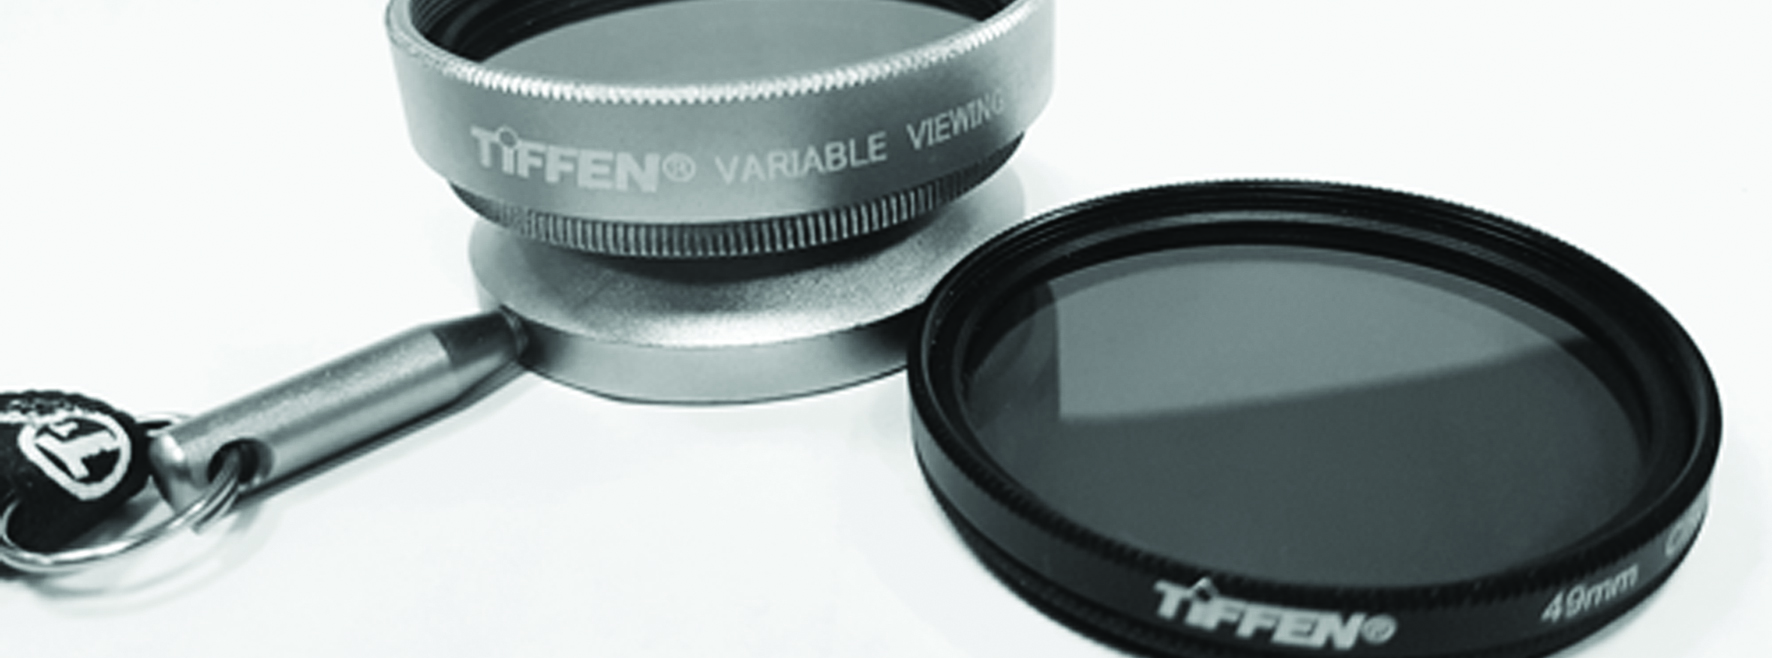 Feature Tiffen 1 Variable Viewing Filter 1705